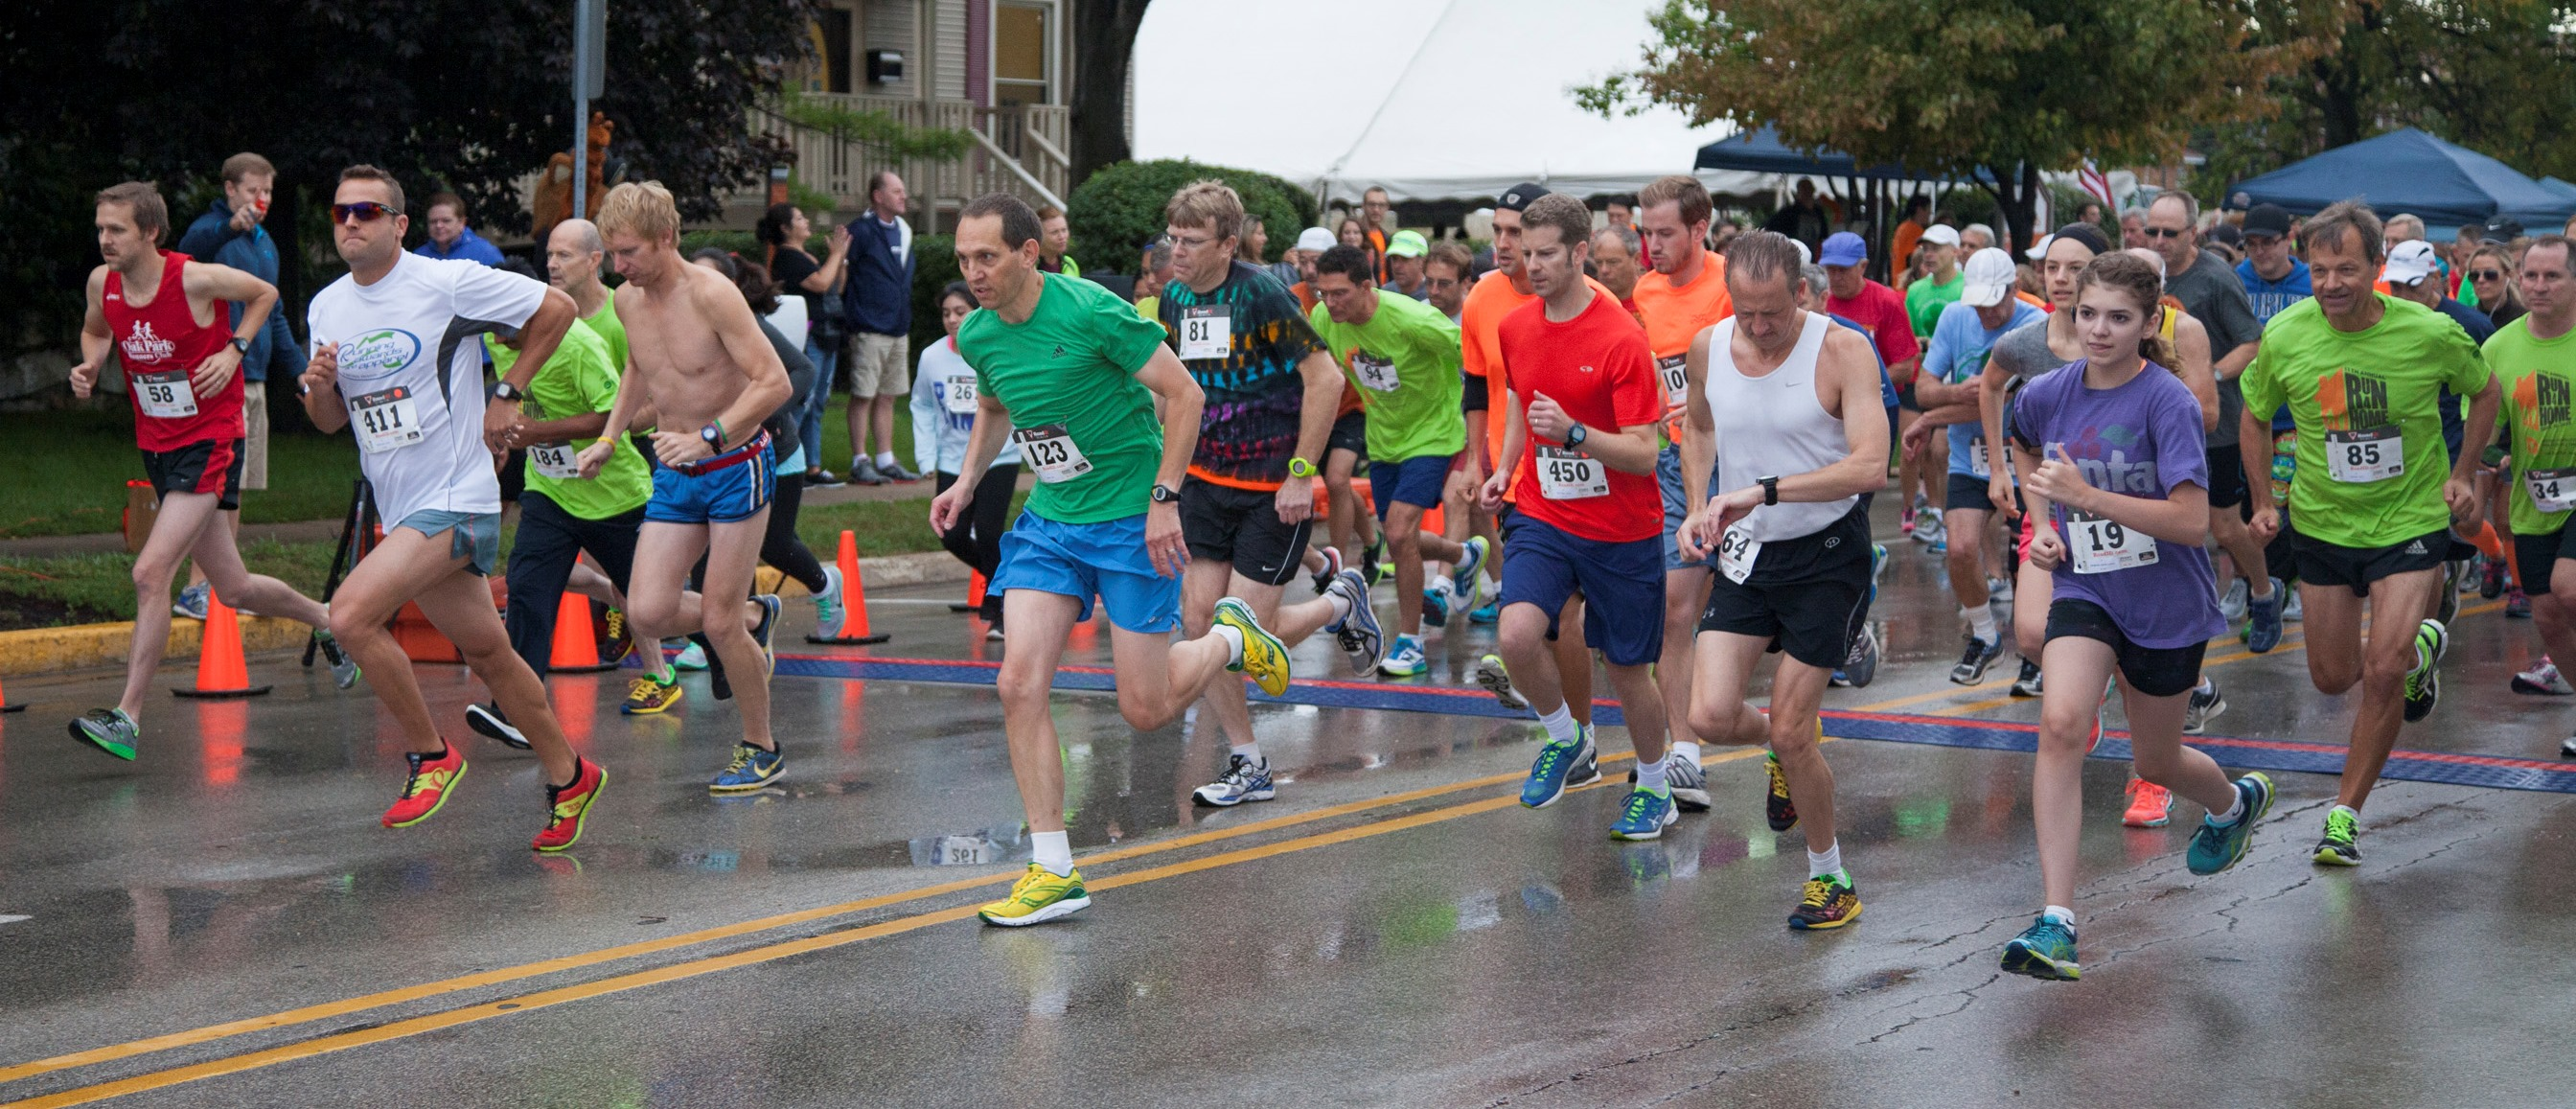 Last year's Run 4 Home featured nearly 1,000 attendees!